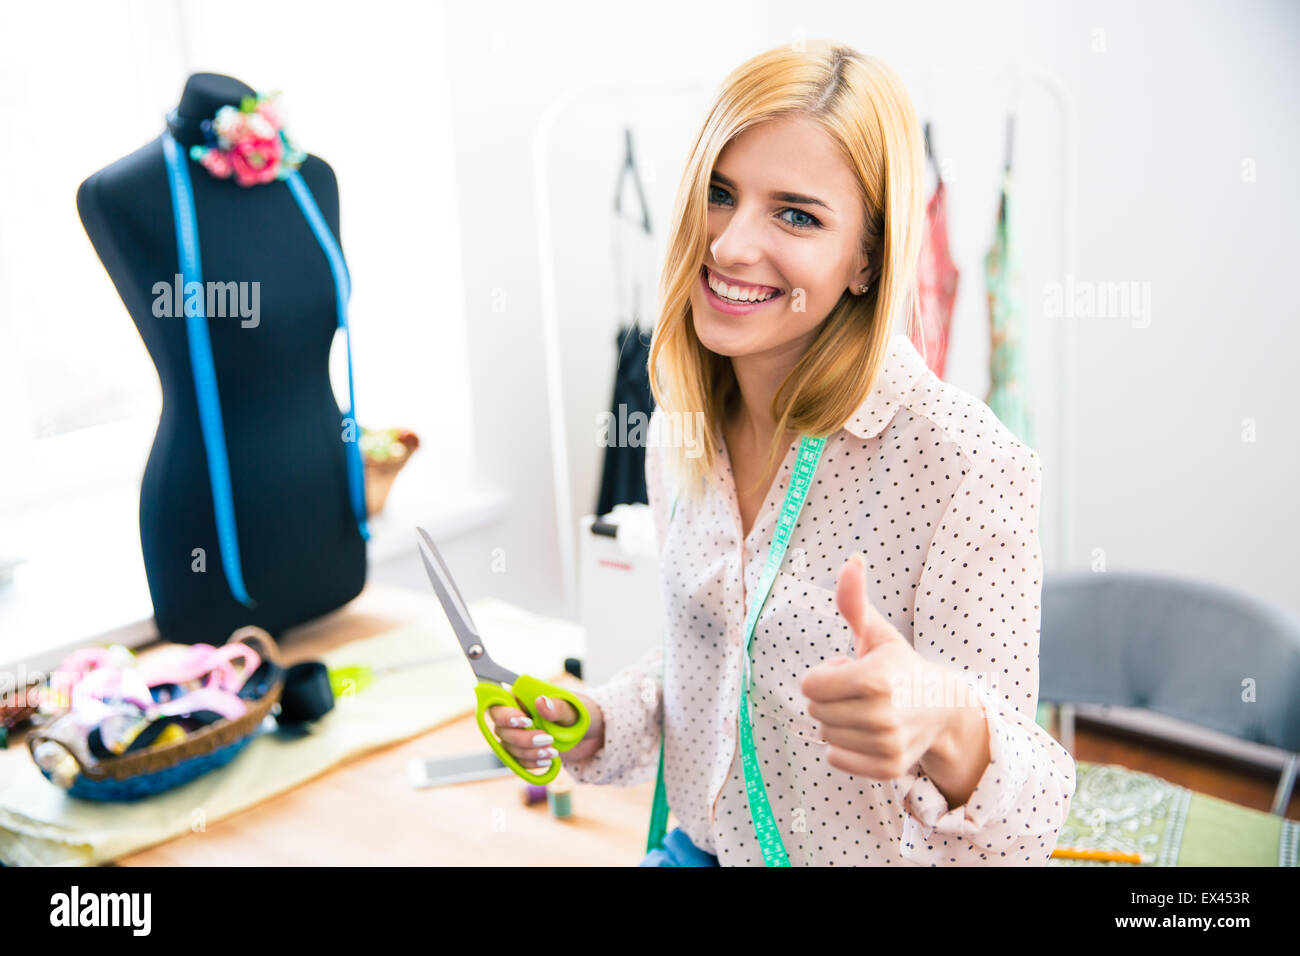 Smiling female tailor standing in workshop and showing thumb up - Stock Image